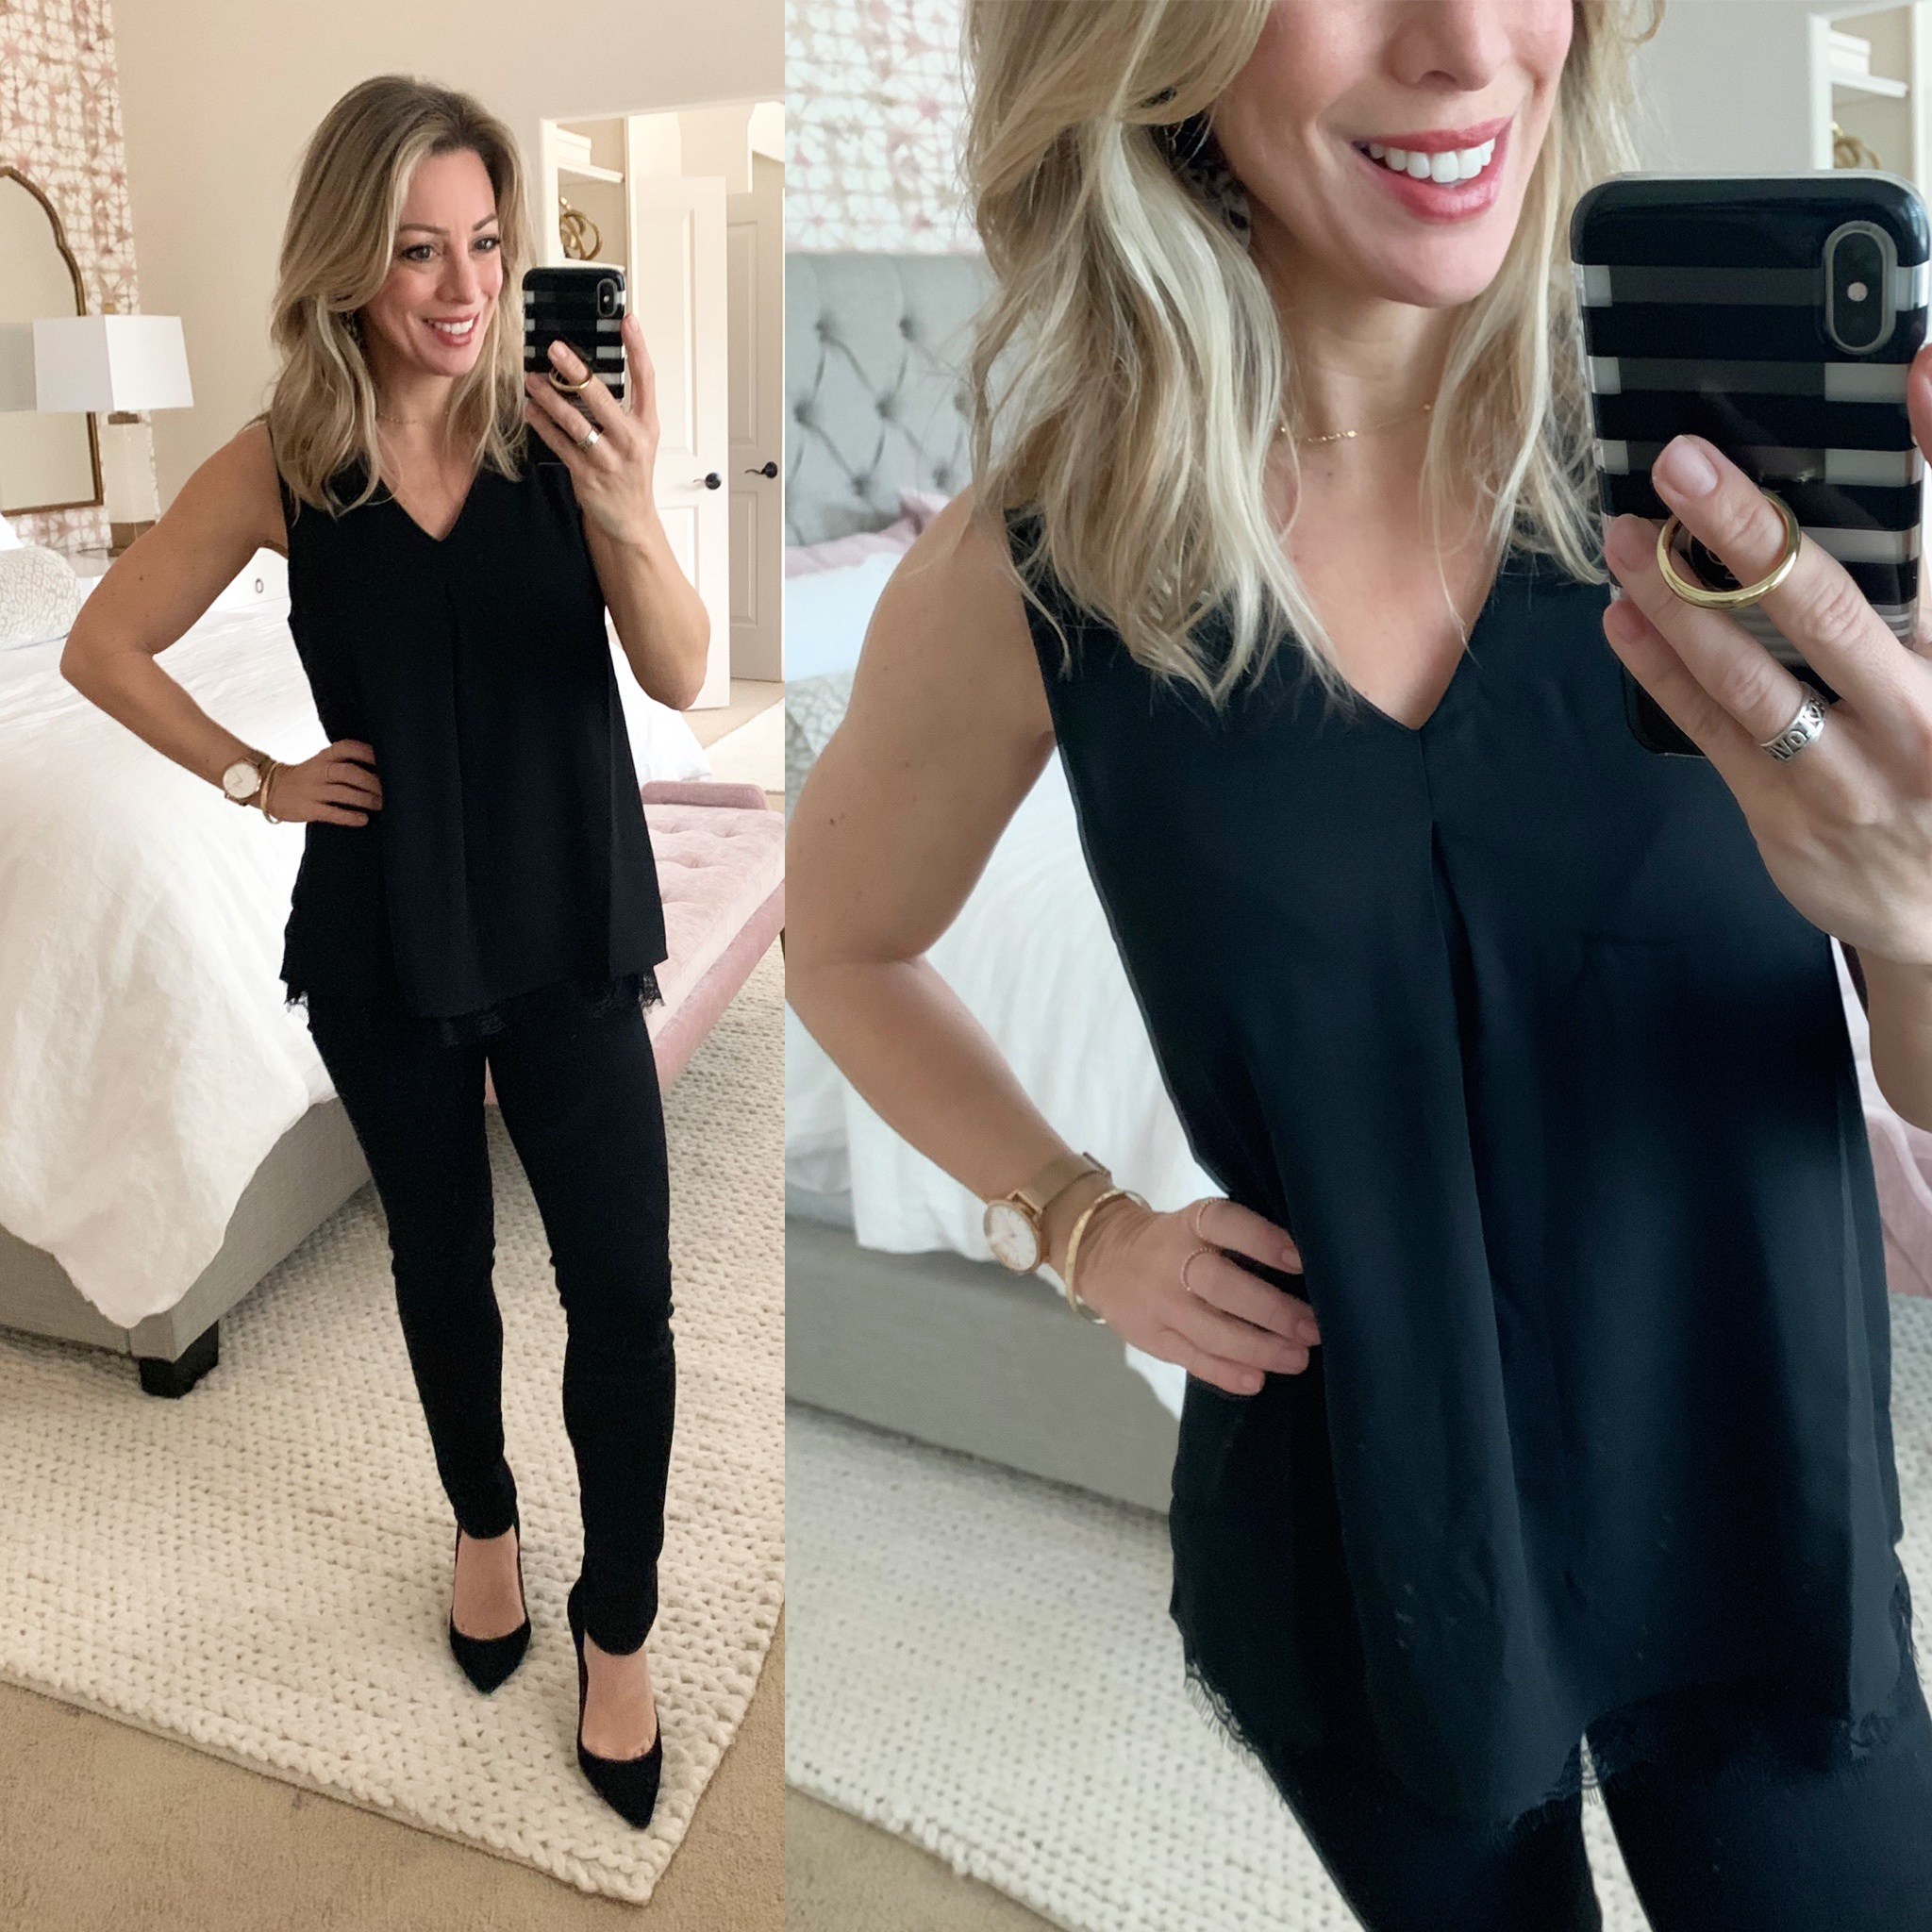 Date night outfit - black lace tank and black skinny jeans